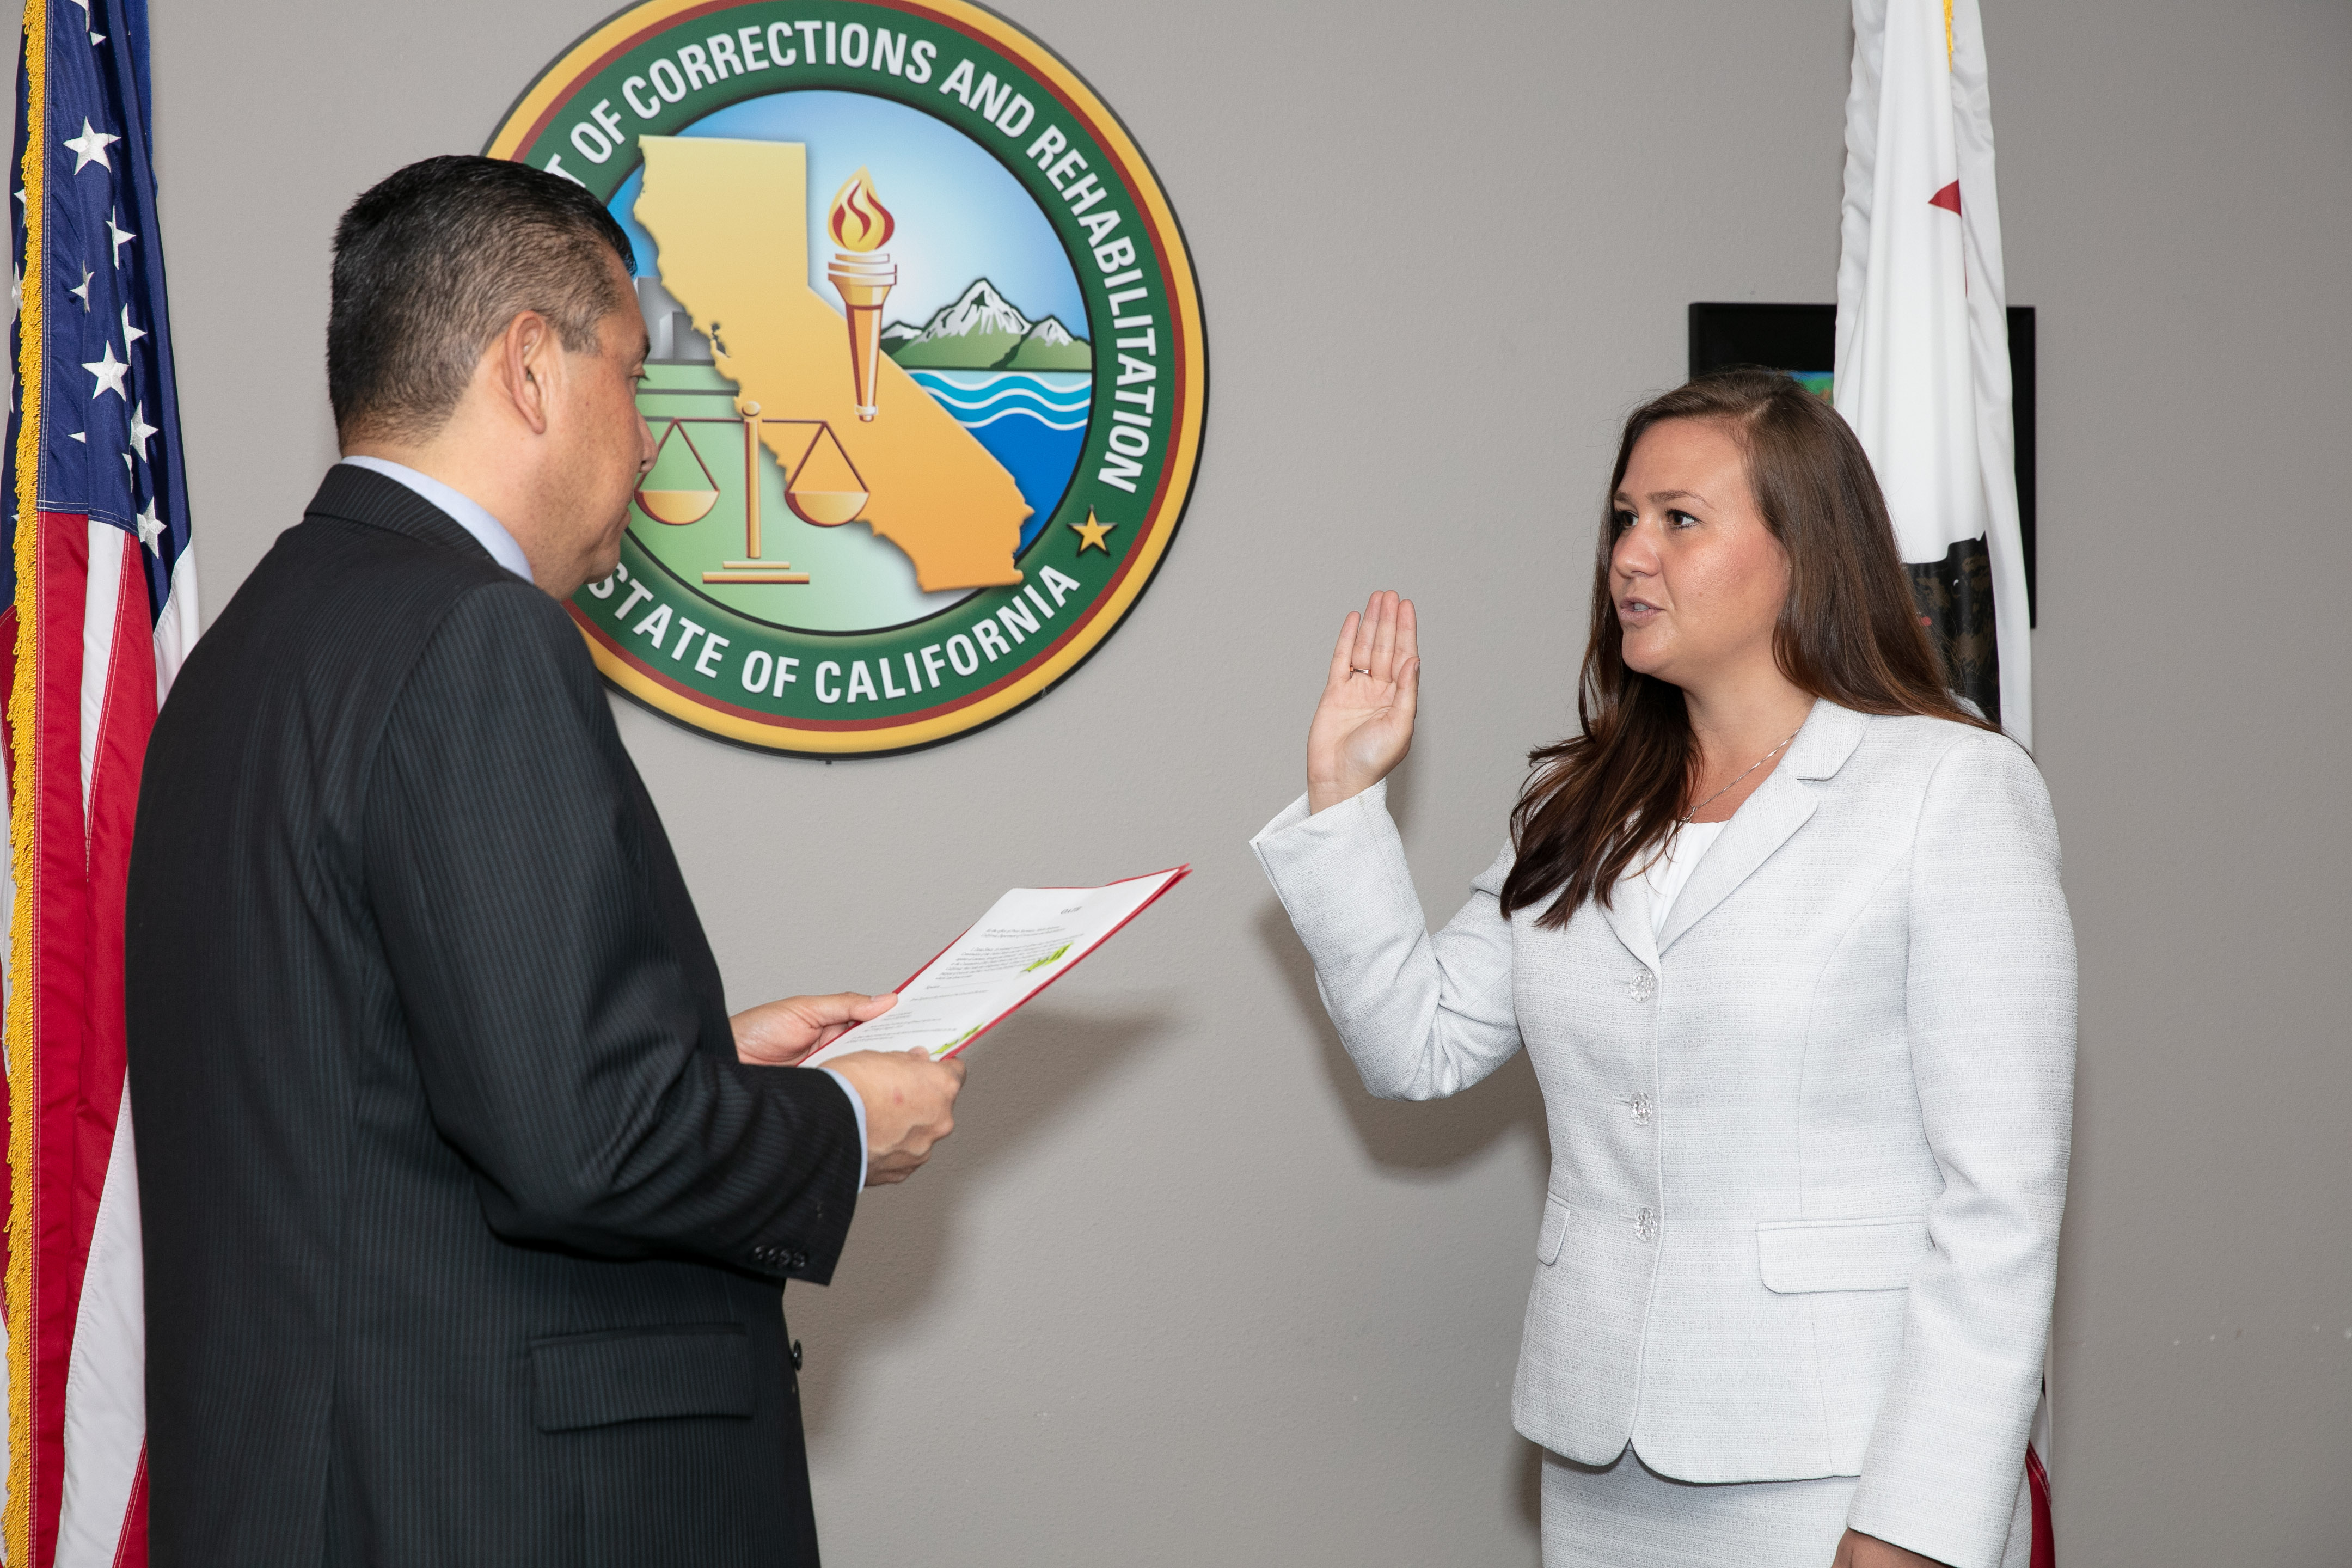 Woman raises right hand while man in suit reads from paper.